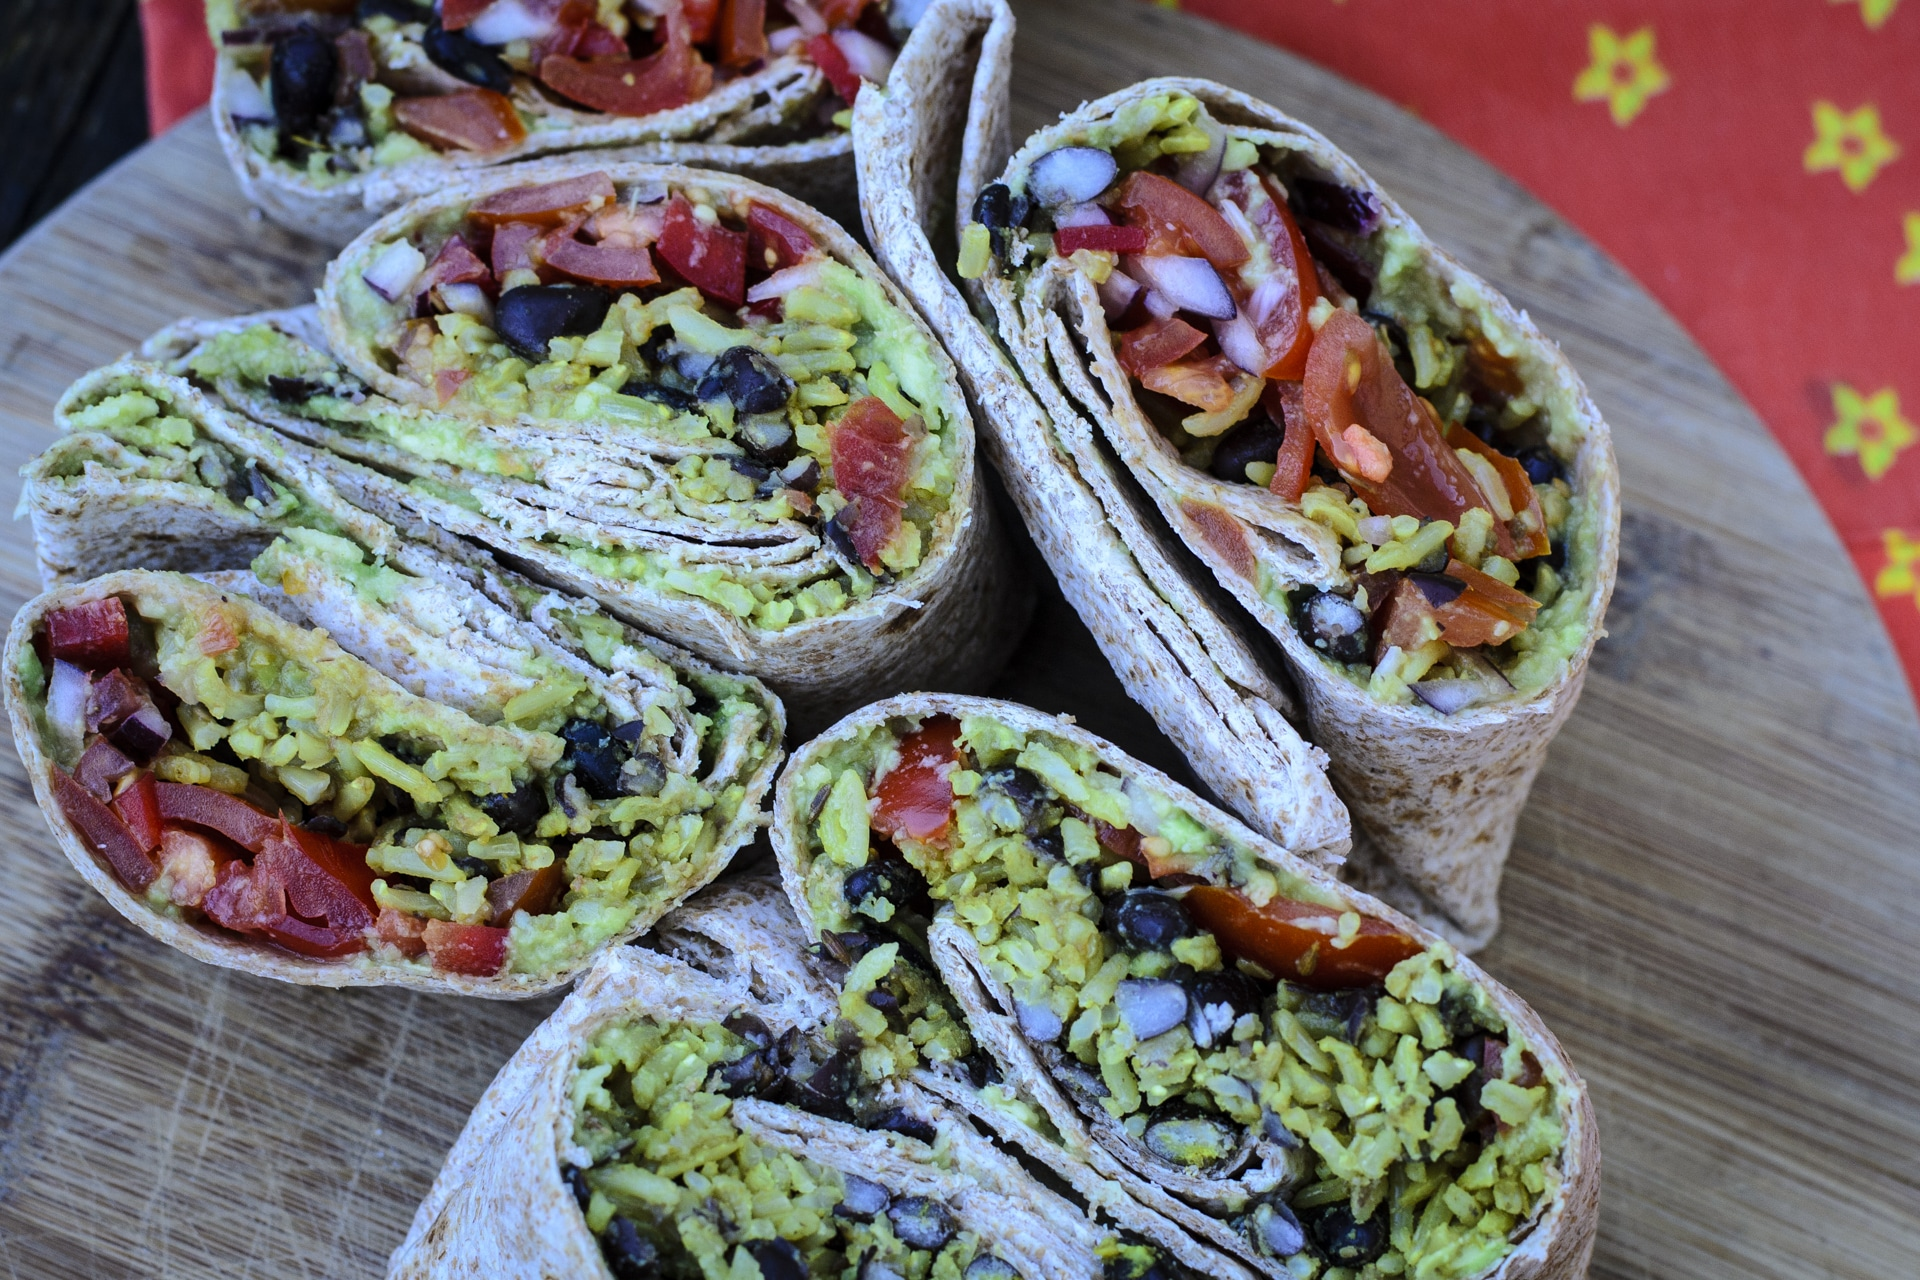 Vegan burritos recipe: tortilla wraps, rice, black beans, avocado, veggies